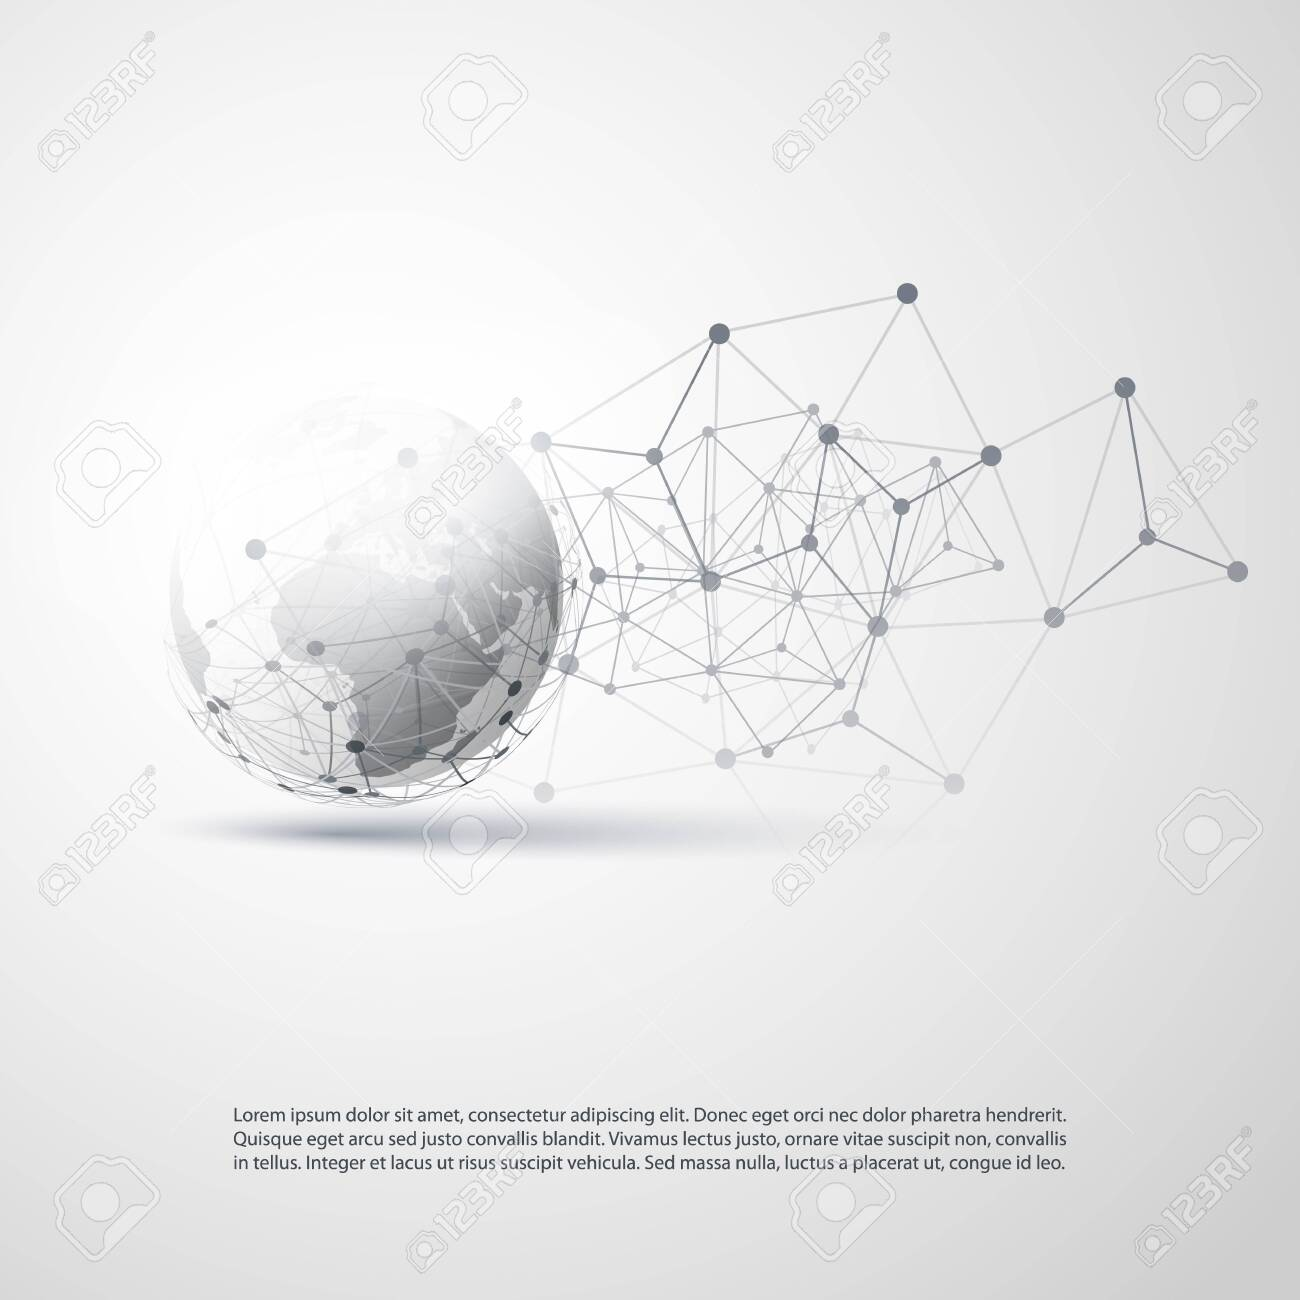 Black and White Modern Minimal Style Cloud Computing, Global Networks Structure - Telecommunications Concept Design, Connections, Transparent Geometric Wireframe - Vector Illustration - 134755120